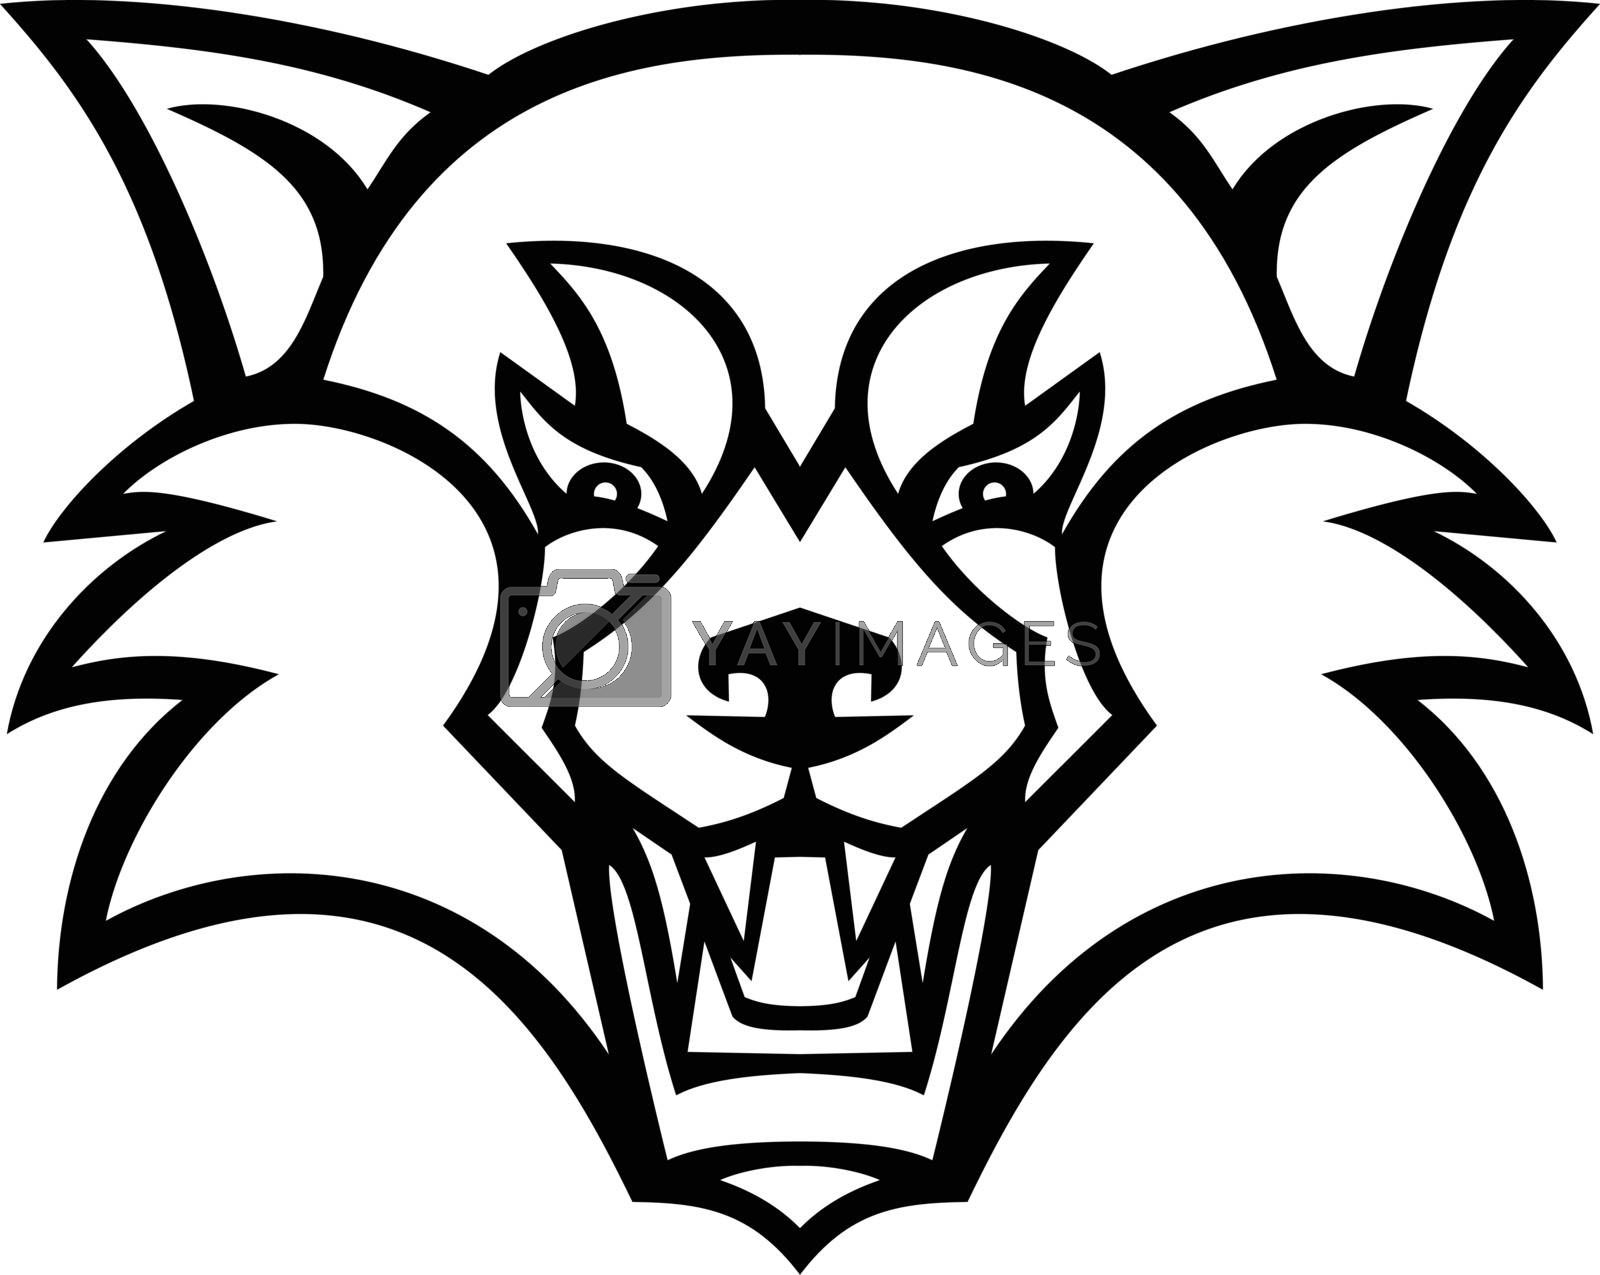 Mascot illustration of head of an angry red panda, the lesser panda, red bear-cat, or the red cat-bear viewed from front on isolated background in retro black and white style.